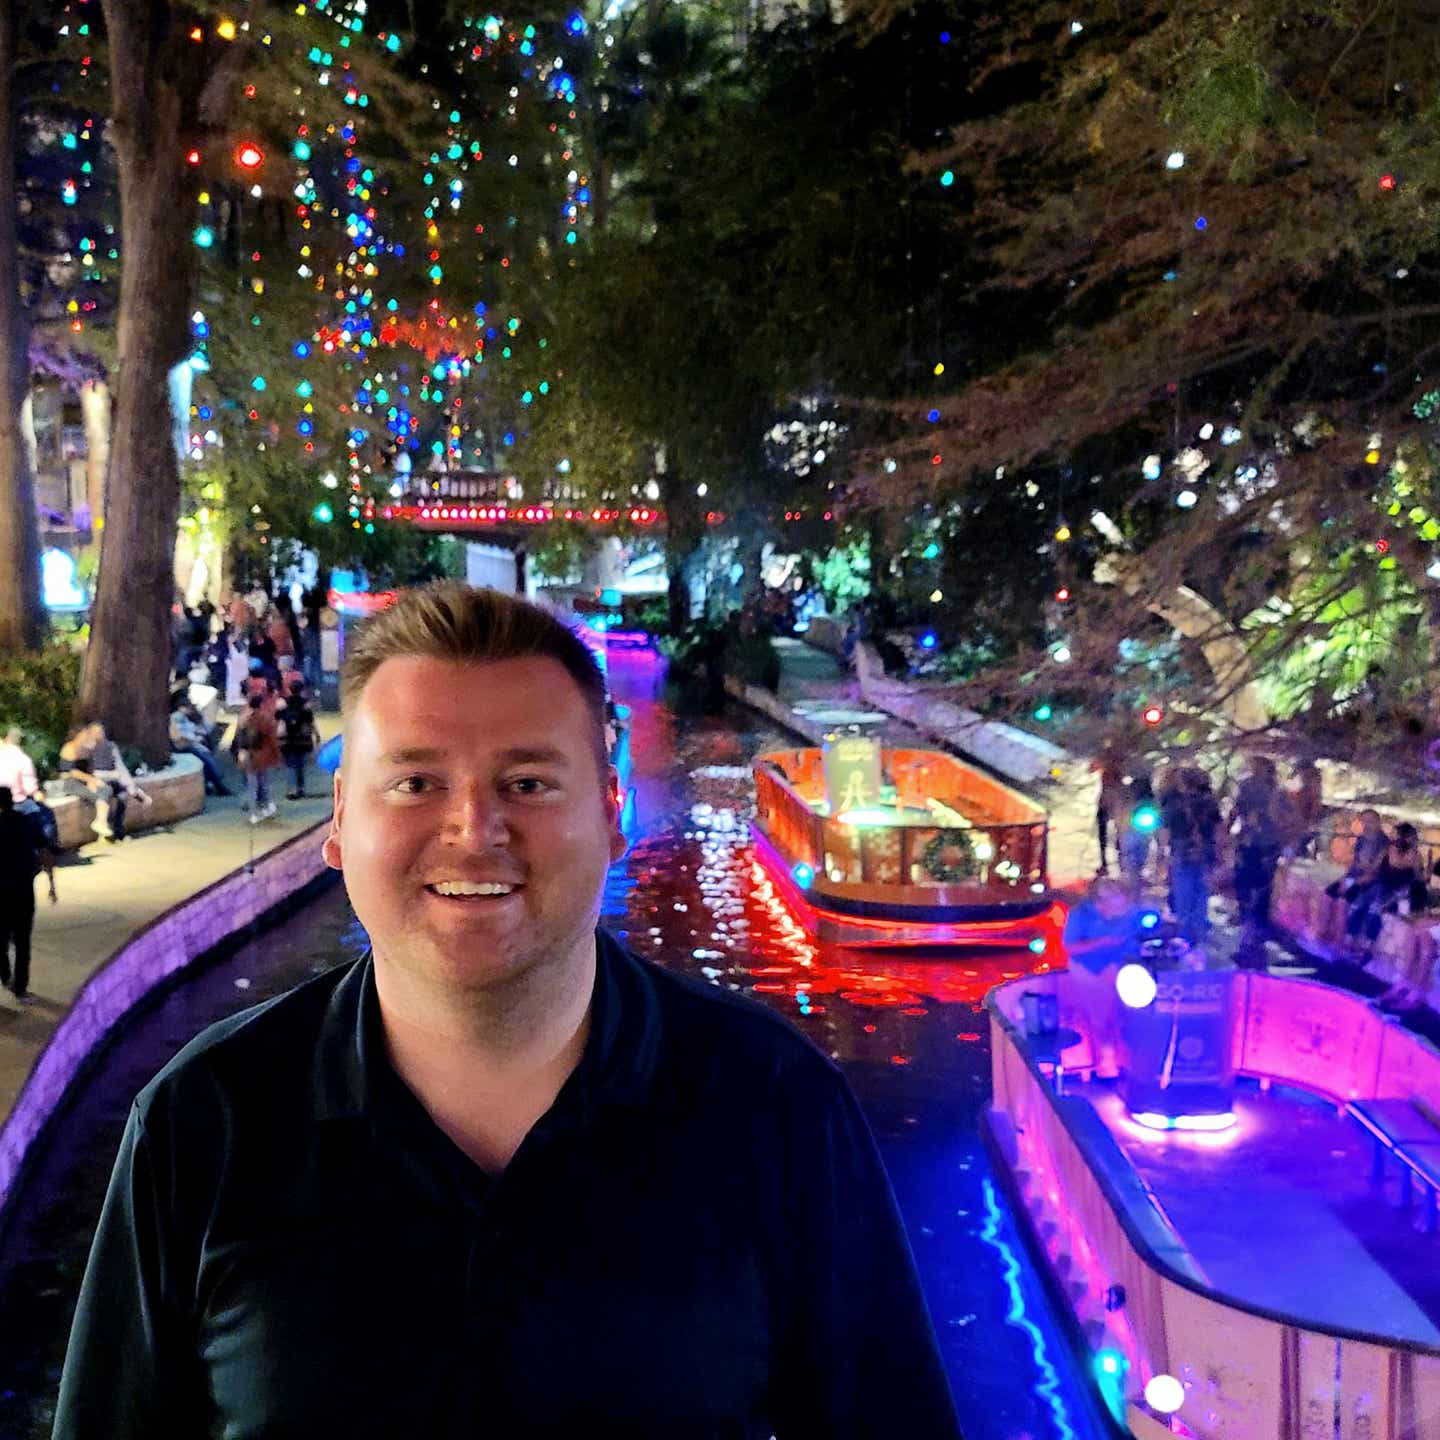 Author, Chris Harms, stands with in front of the San Antonio Riverwalk decorated for the holidays.